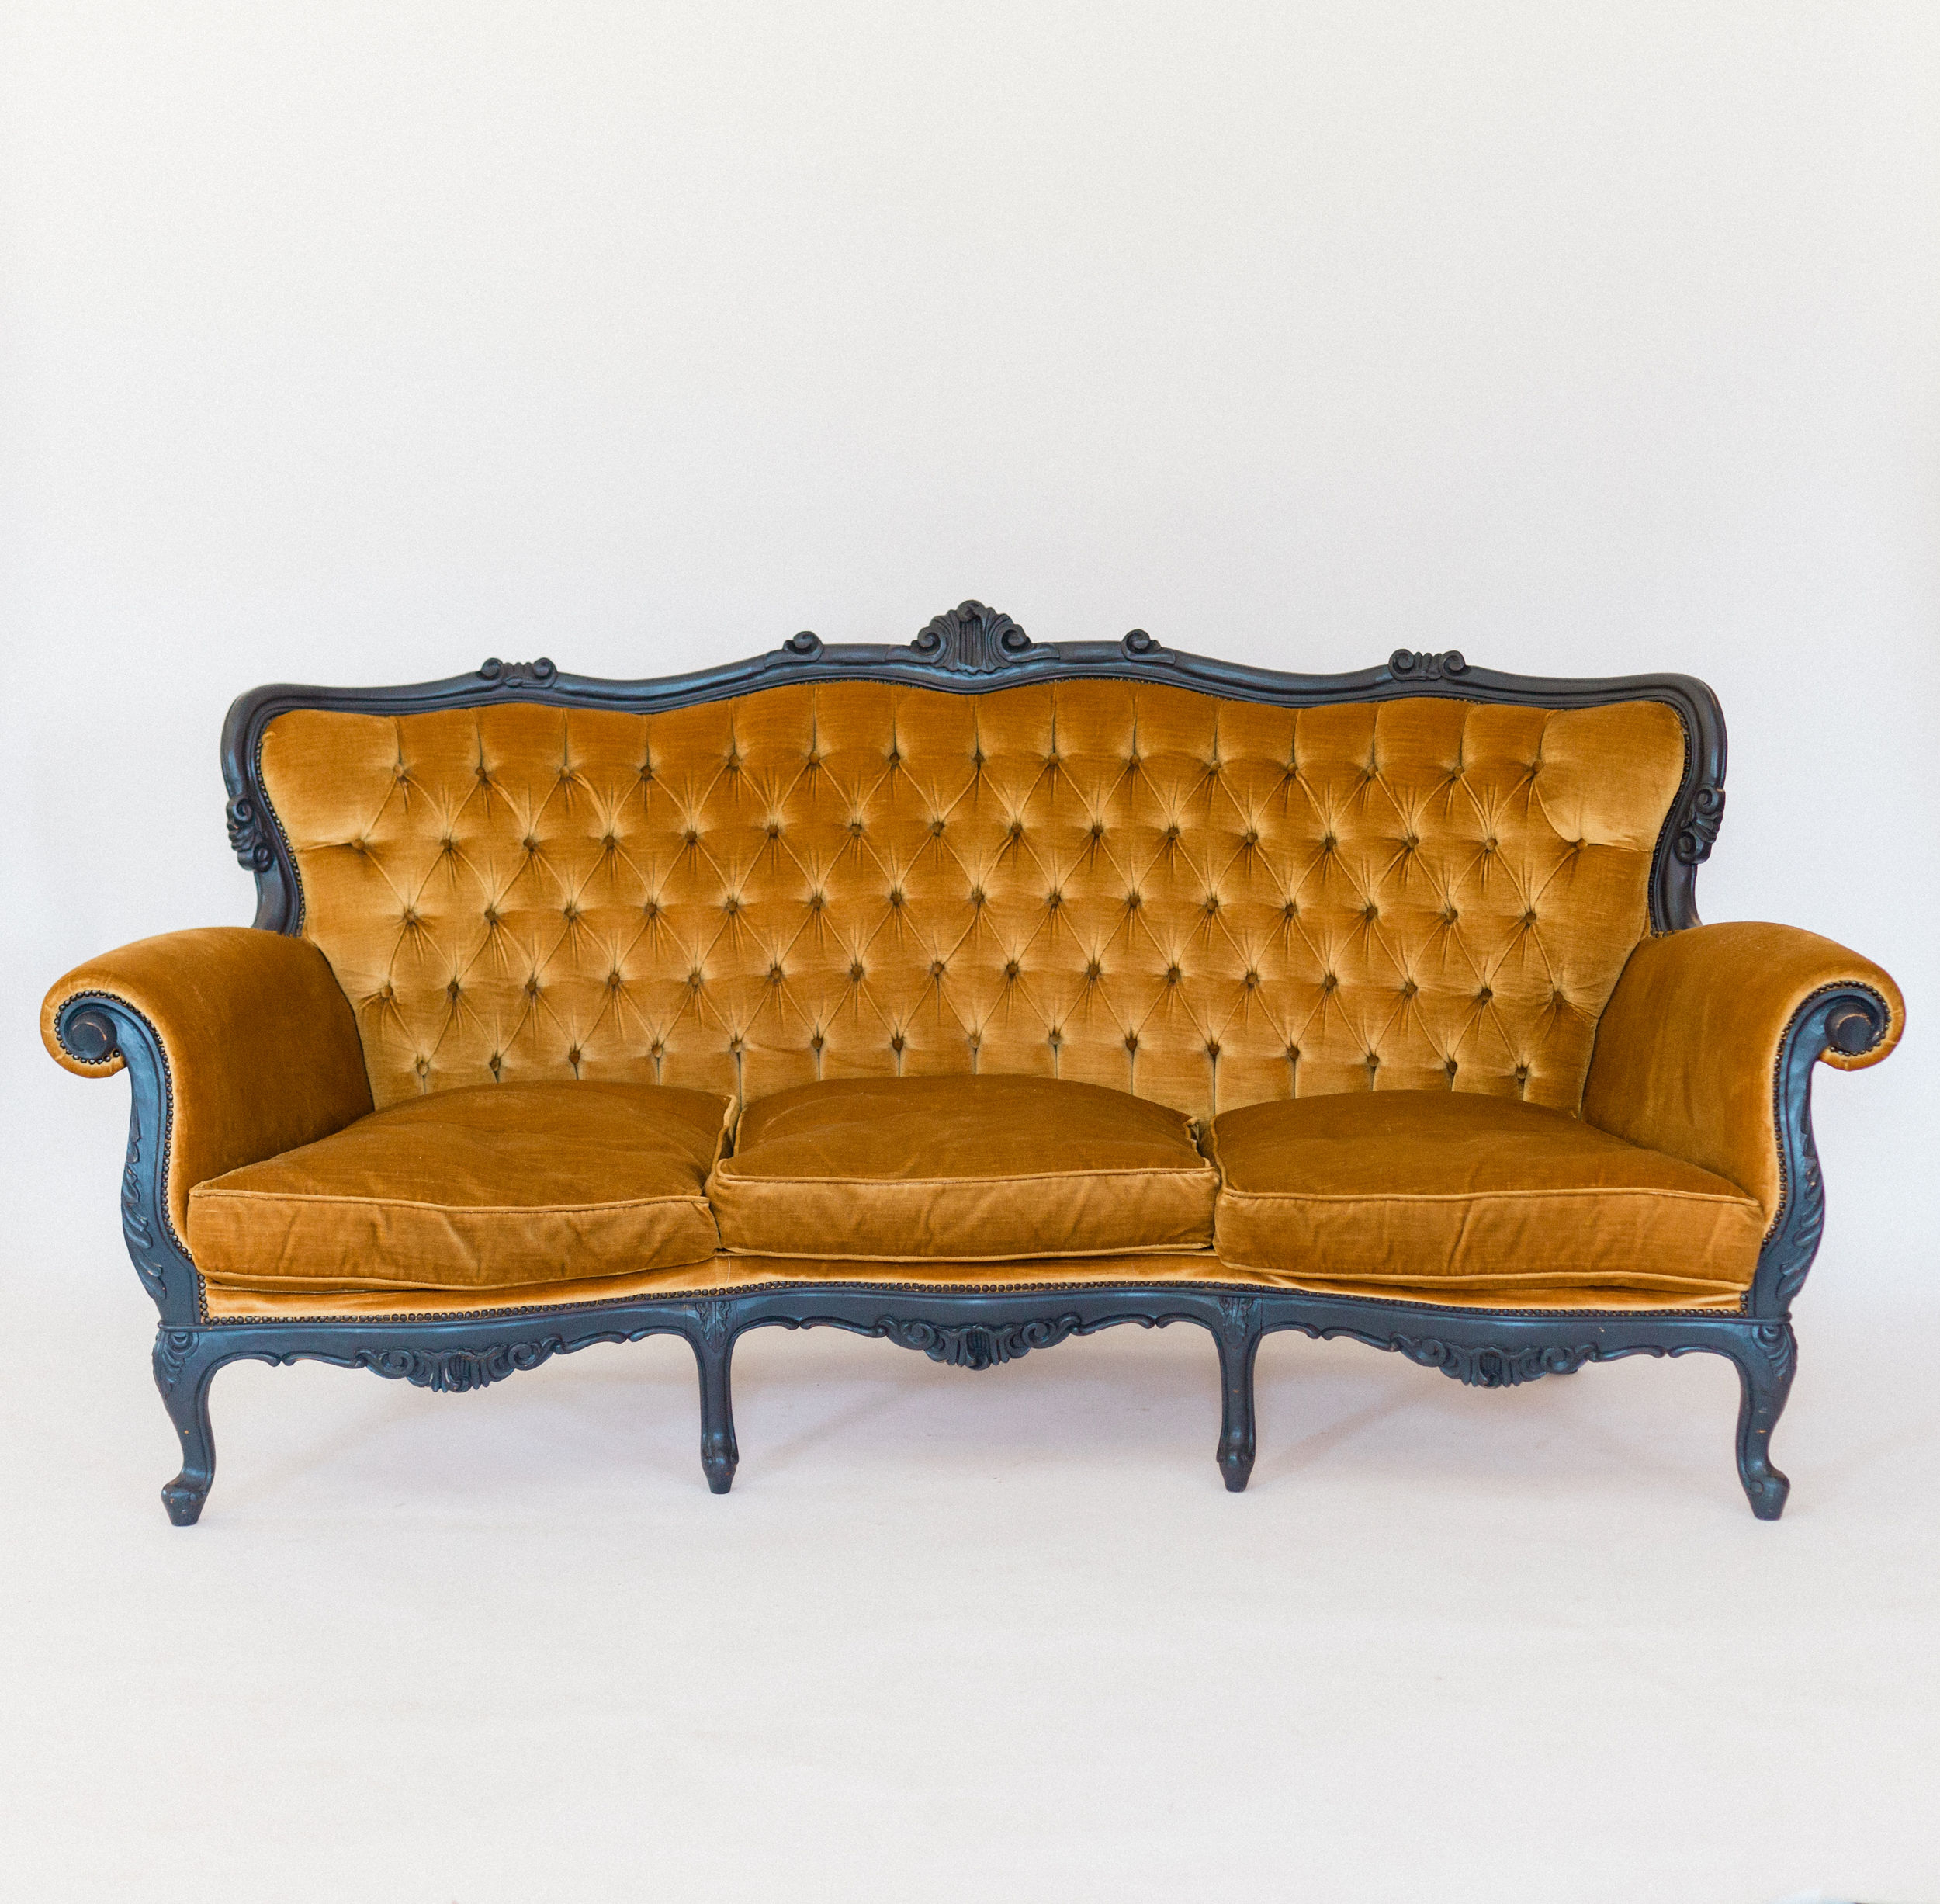 Callie Sofa — Greenhouse Picker Sisters Throughout Callie Sofa Chairs (View 8 of 20)